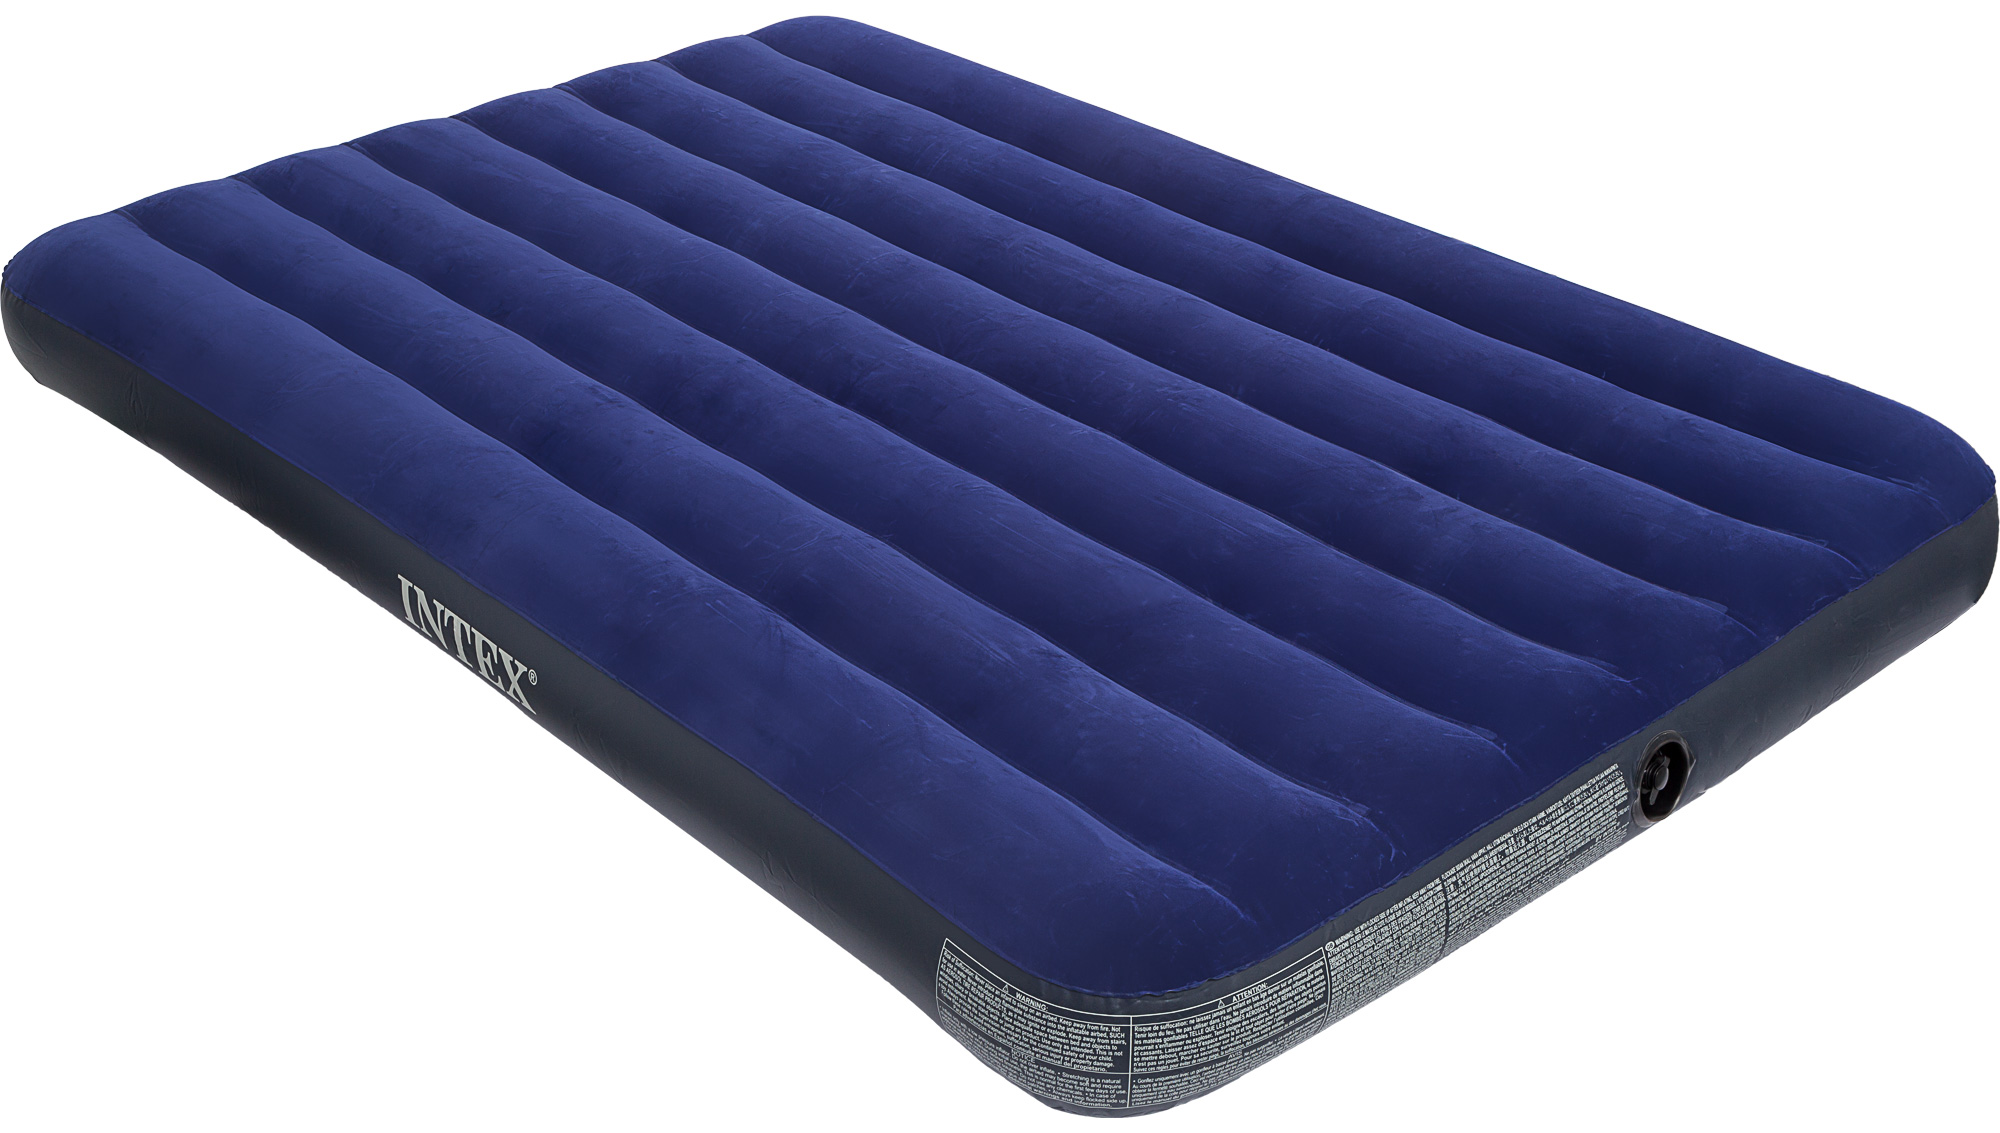 Intex Матрас надувной Intex Classic Downy Bed Full intex надувной матрас supreme air flow bed